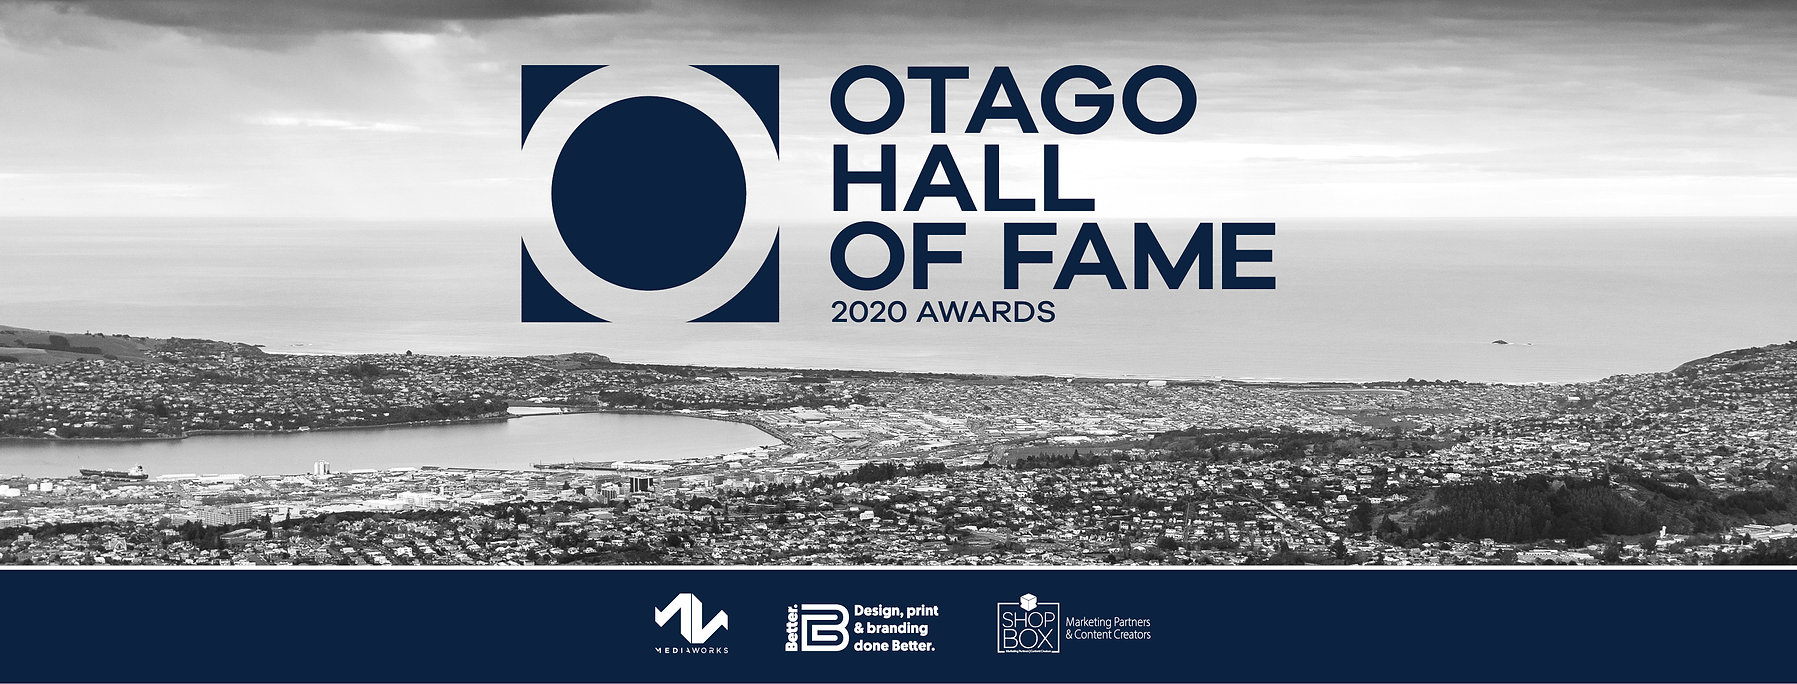 Otago Hall of Fame - FB Cover (partners)